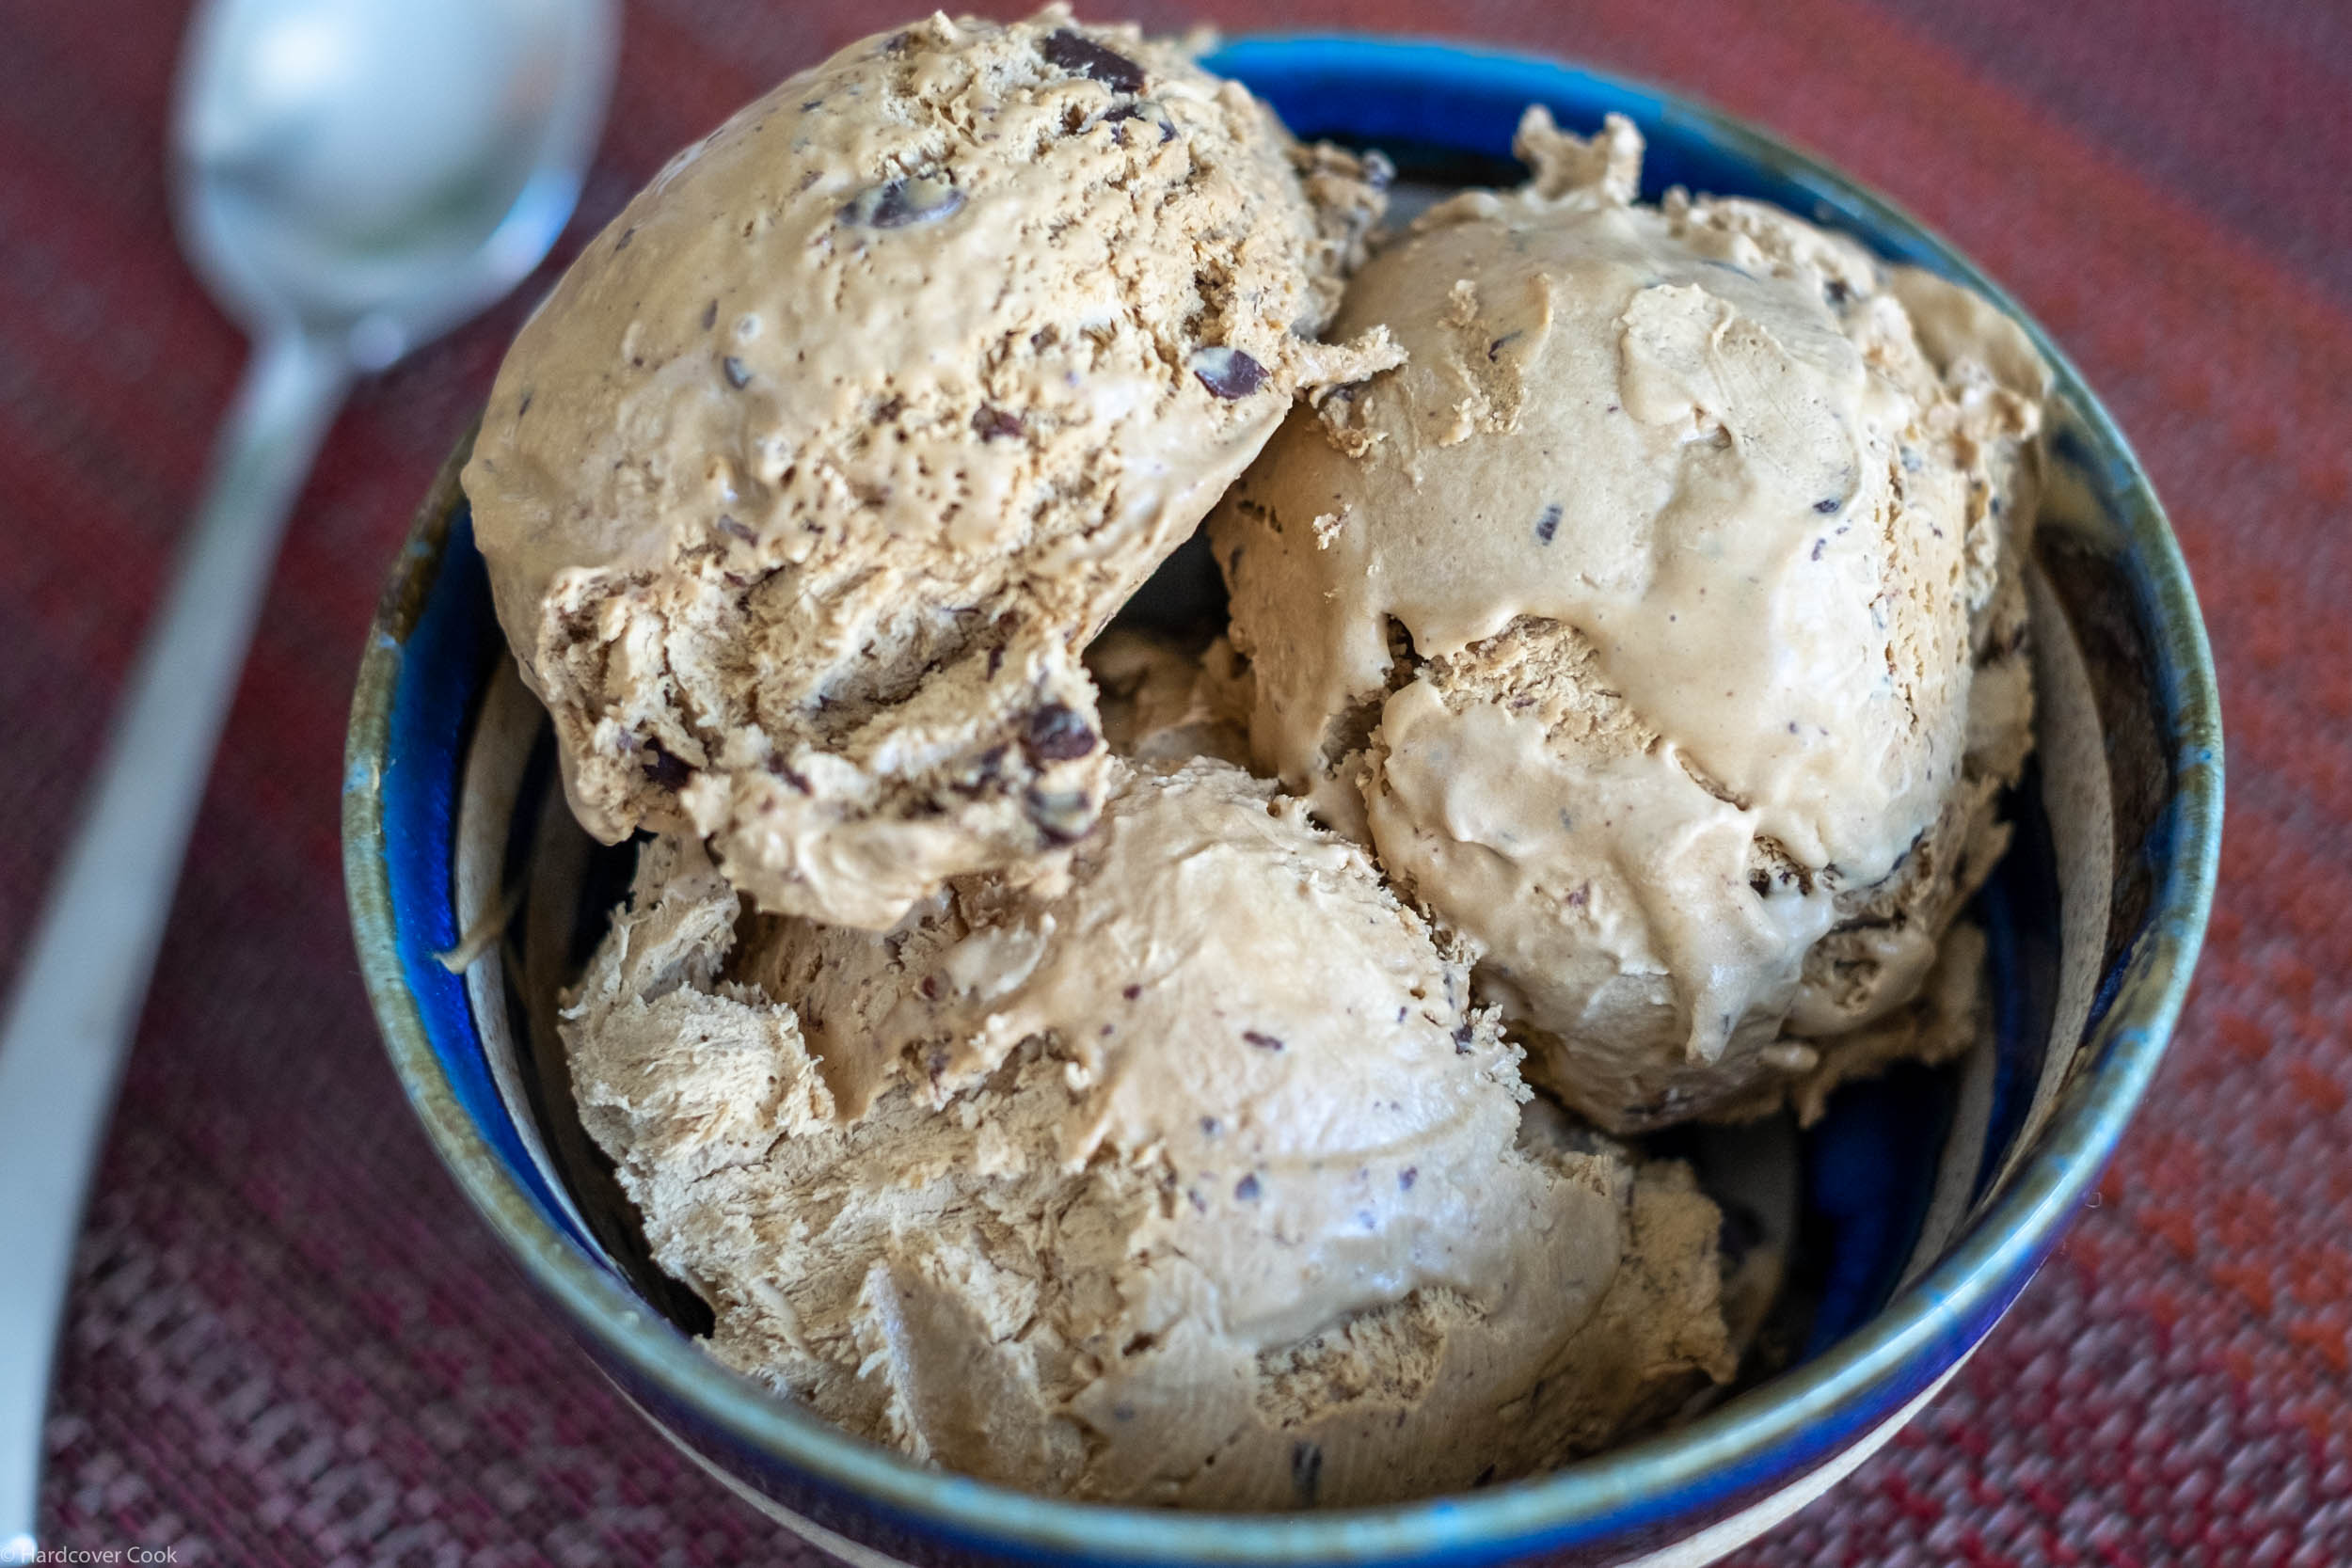 Here's my attempt of the Coffee and Chocolate Ice Cream variation.